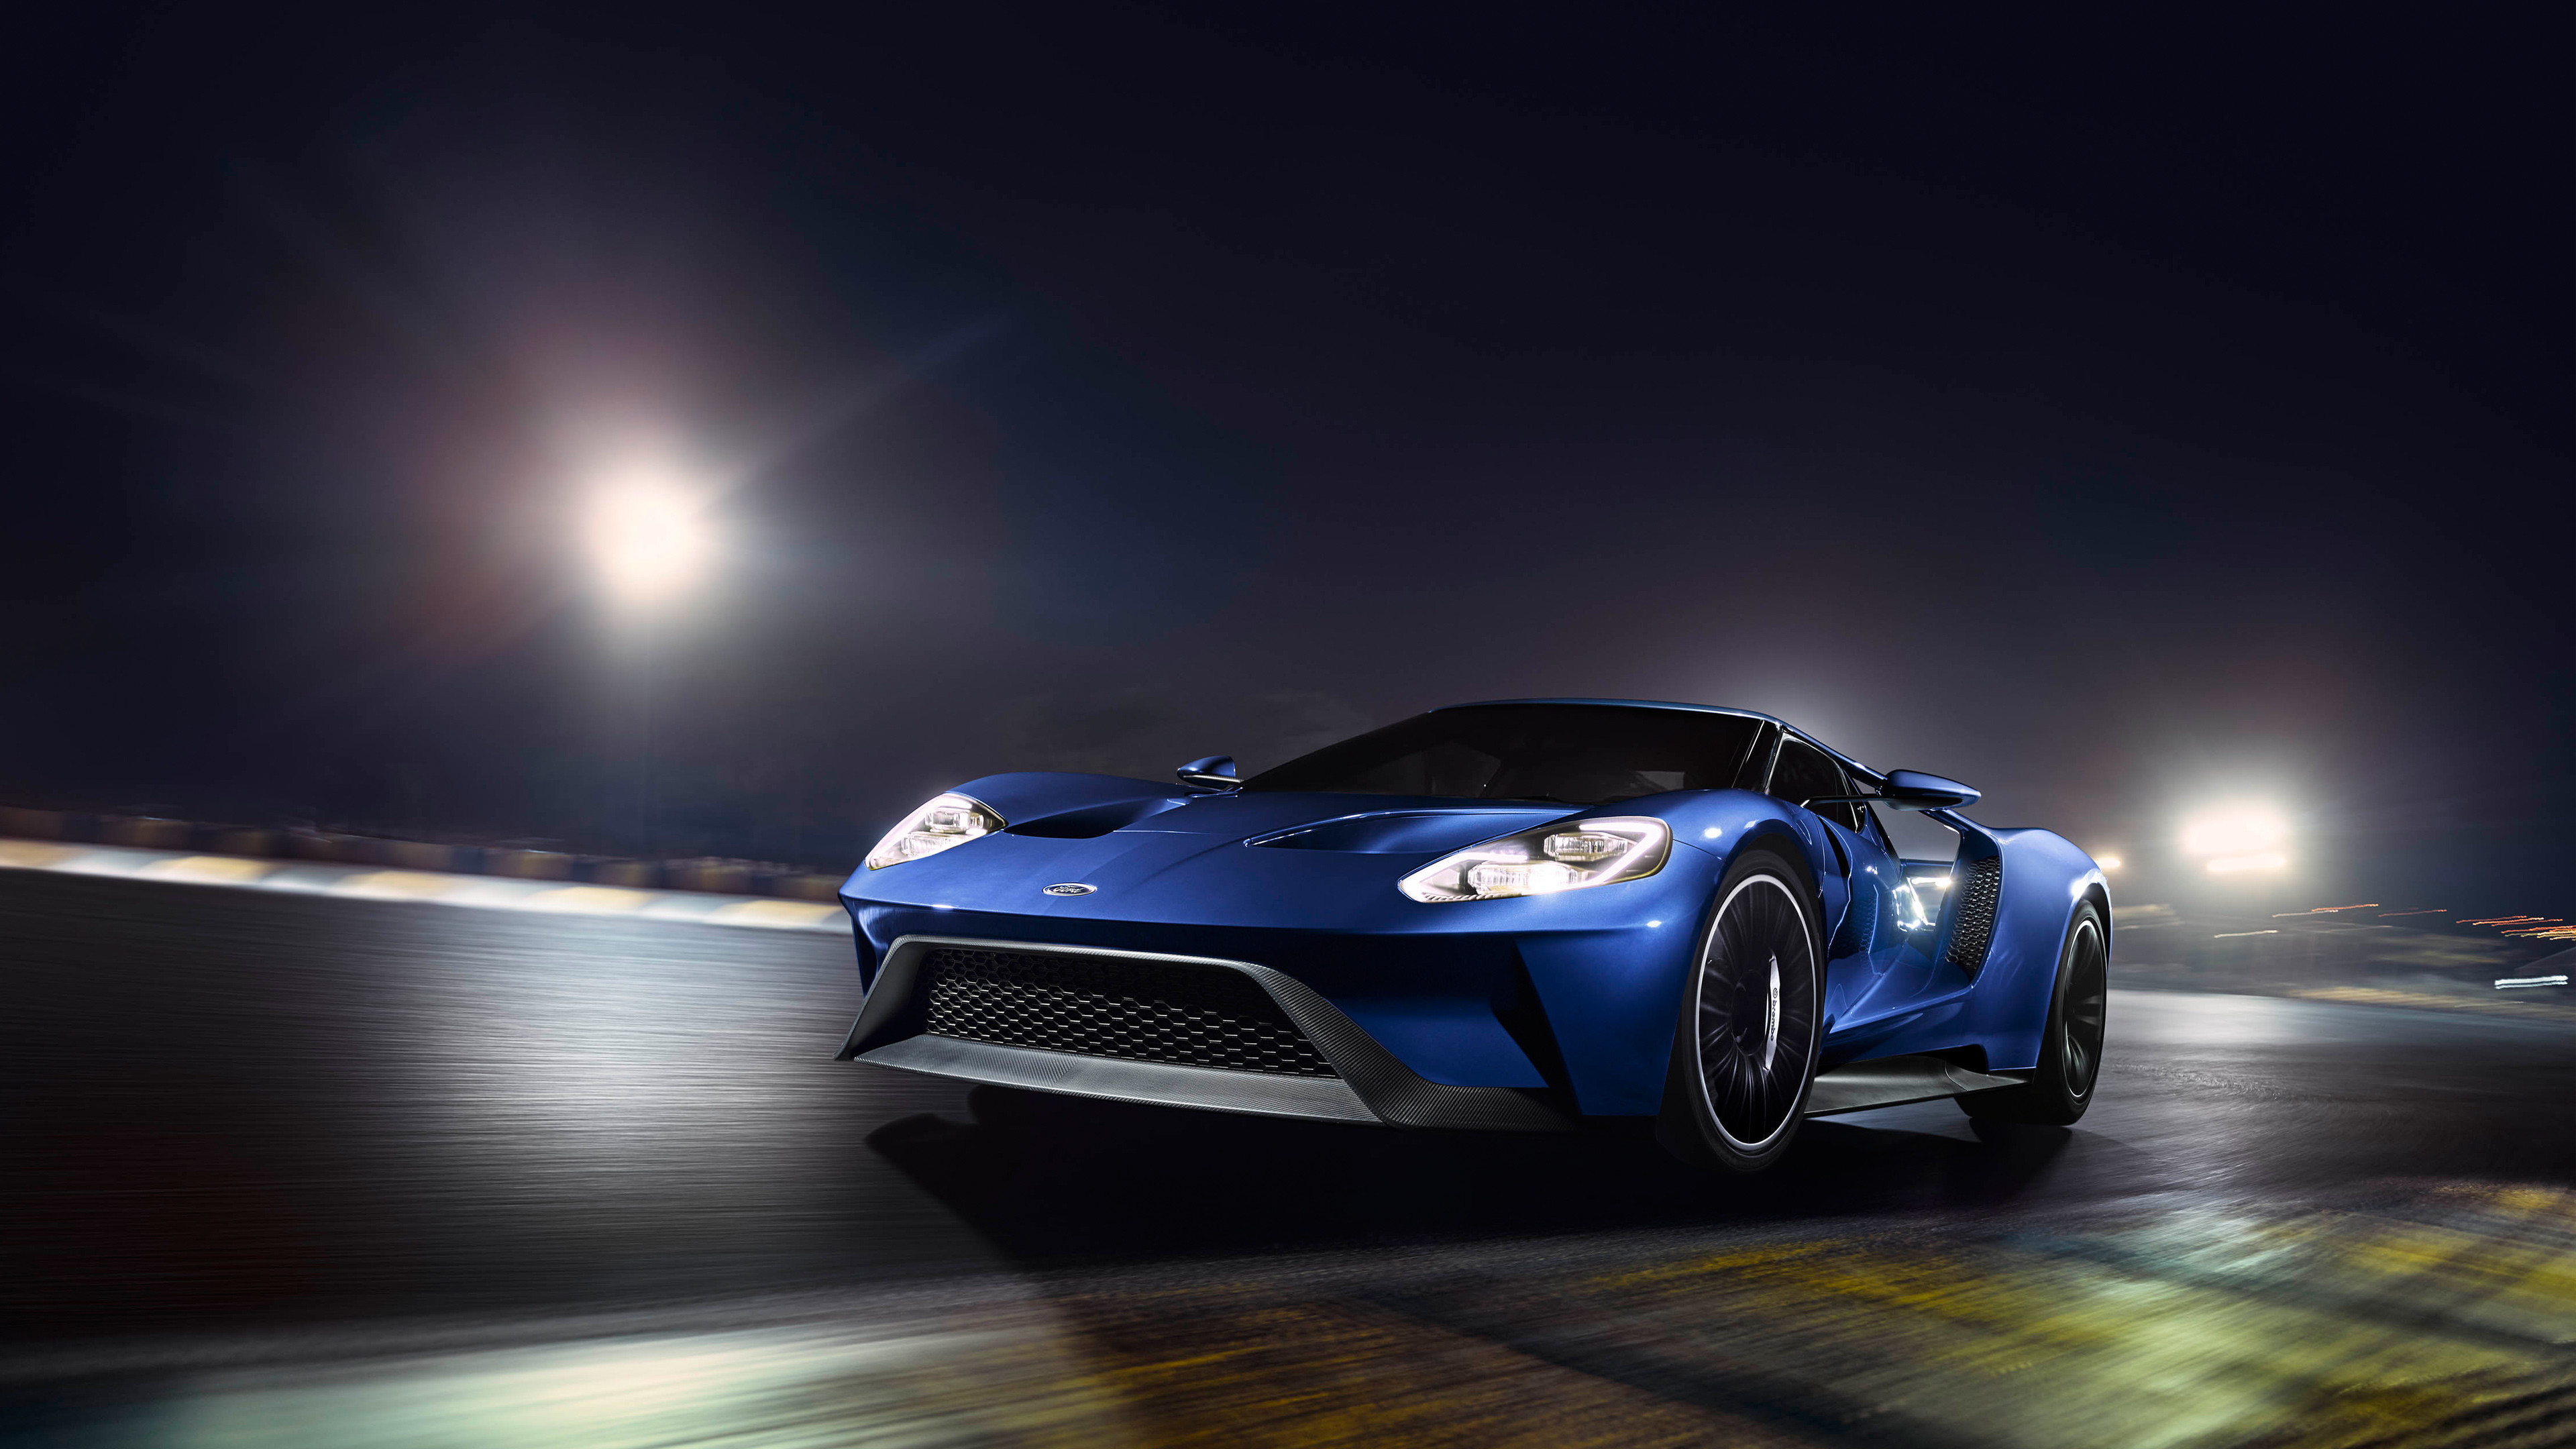 Ford Gt Wallpaper Hd 74 Images